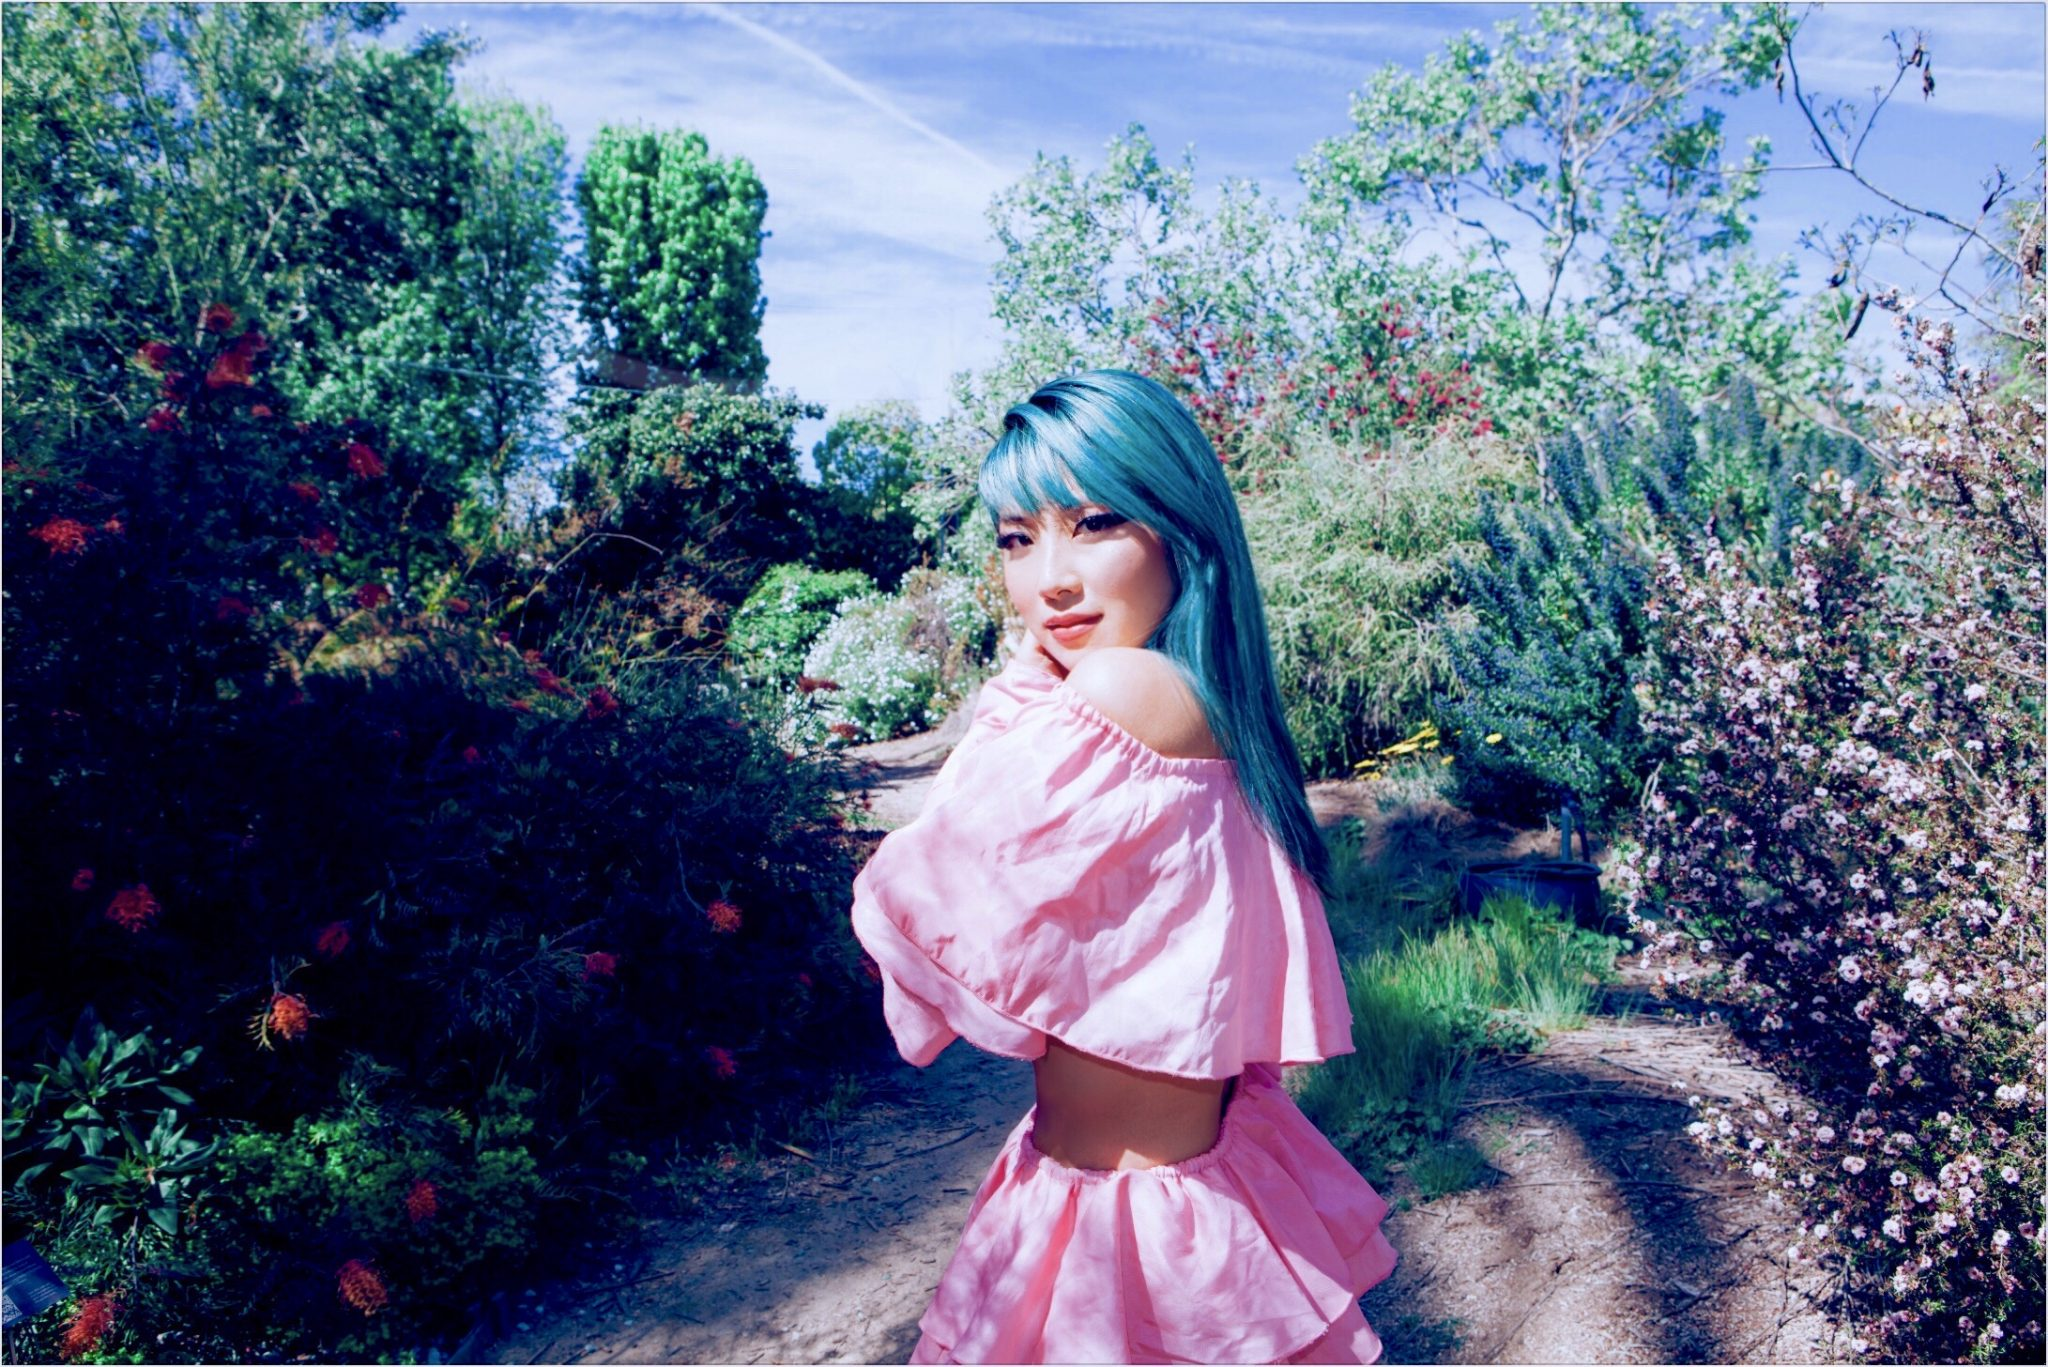 Colour photograph of Polartropica. They are stood outside surrounded by trees and plants. They have long turquoise hair with a fringe. They wear a crop top and layered skirt co-ord outfit in pastel pink. They have winged eyeliner and a peach lip stick on. They are side on and their arm is wrapped around them as they turn to look back at the camera.